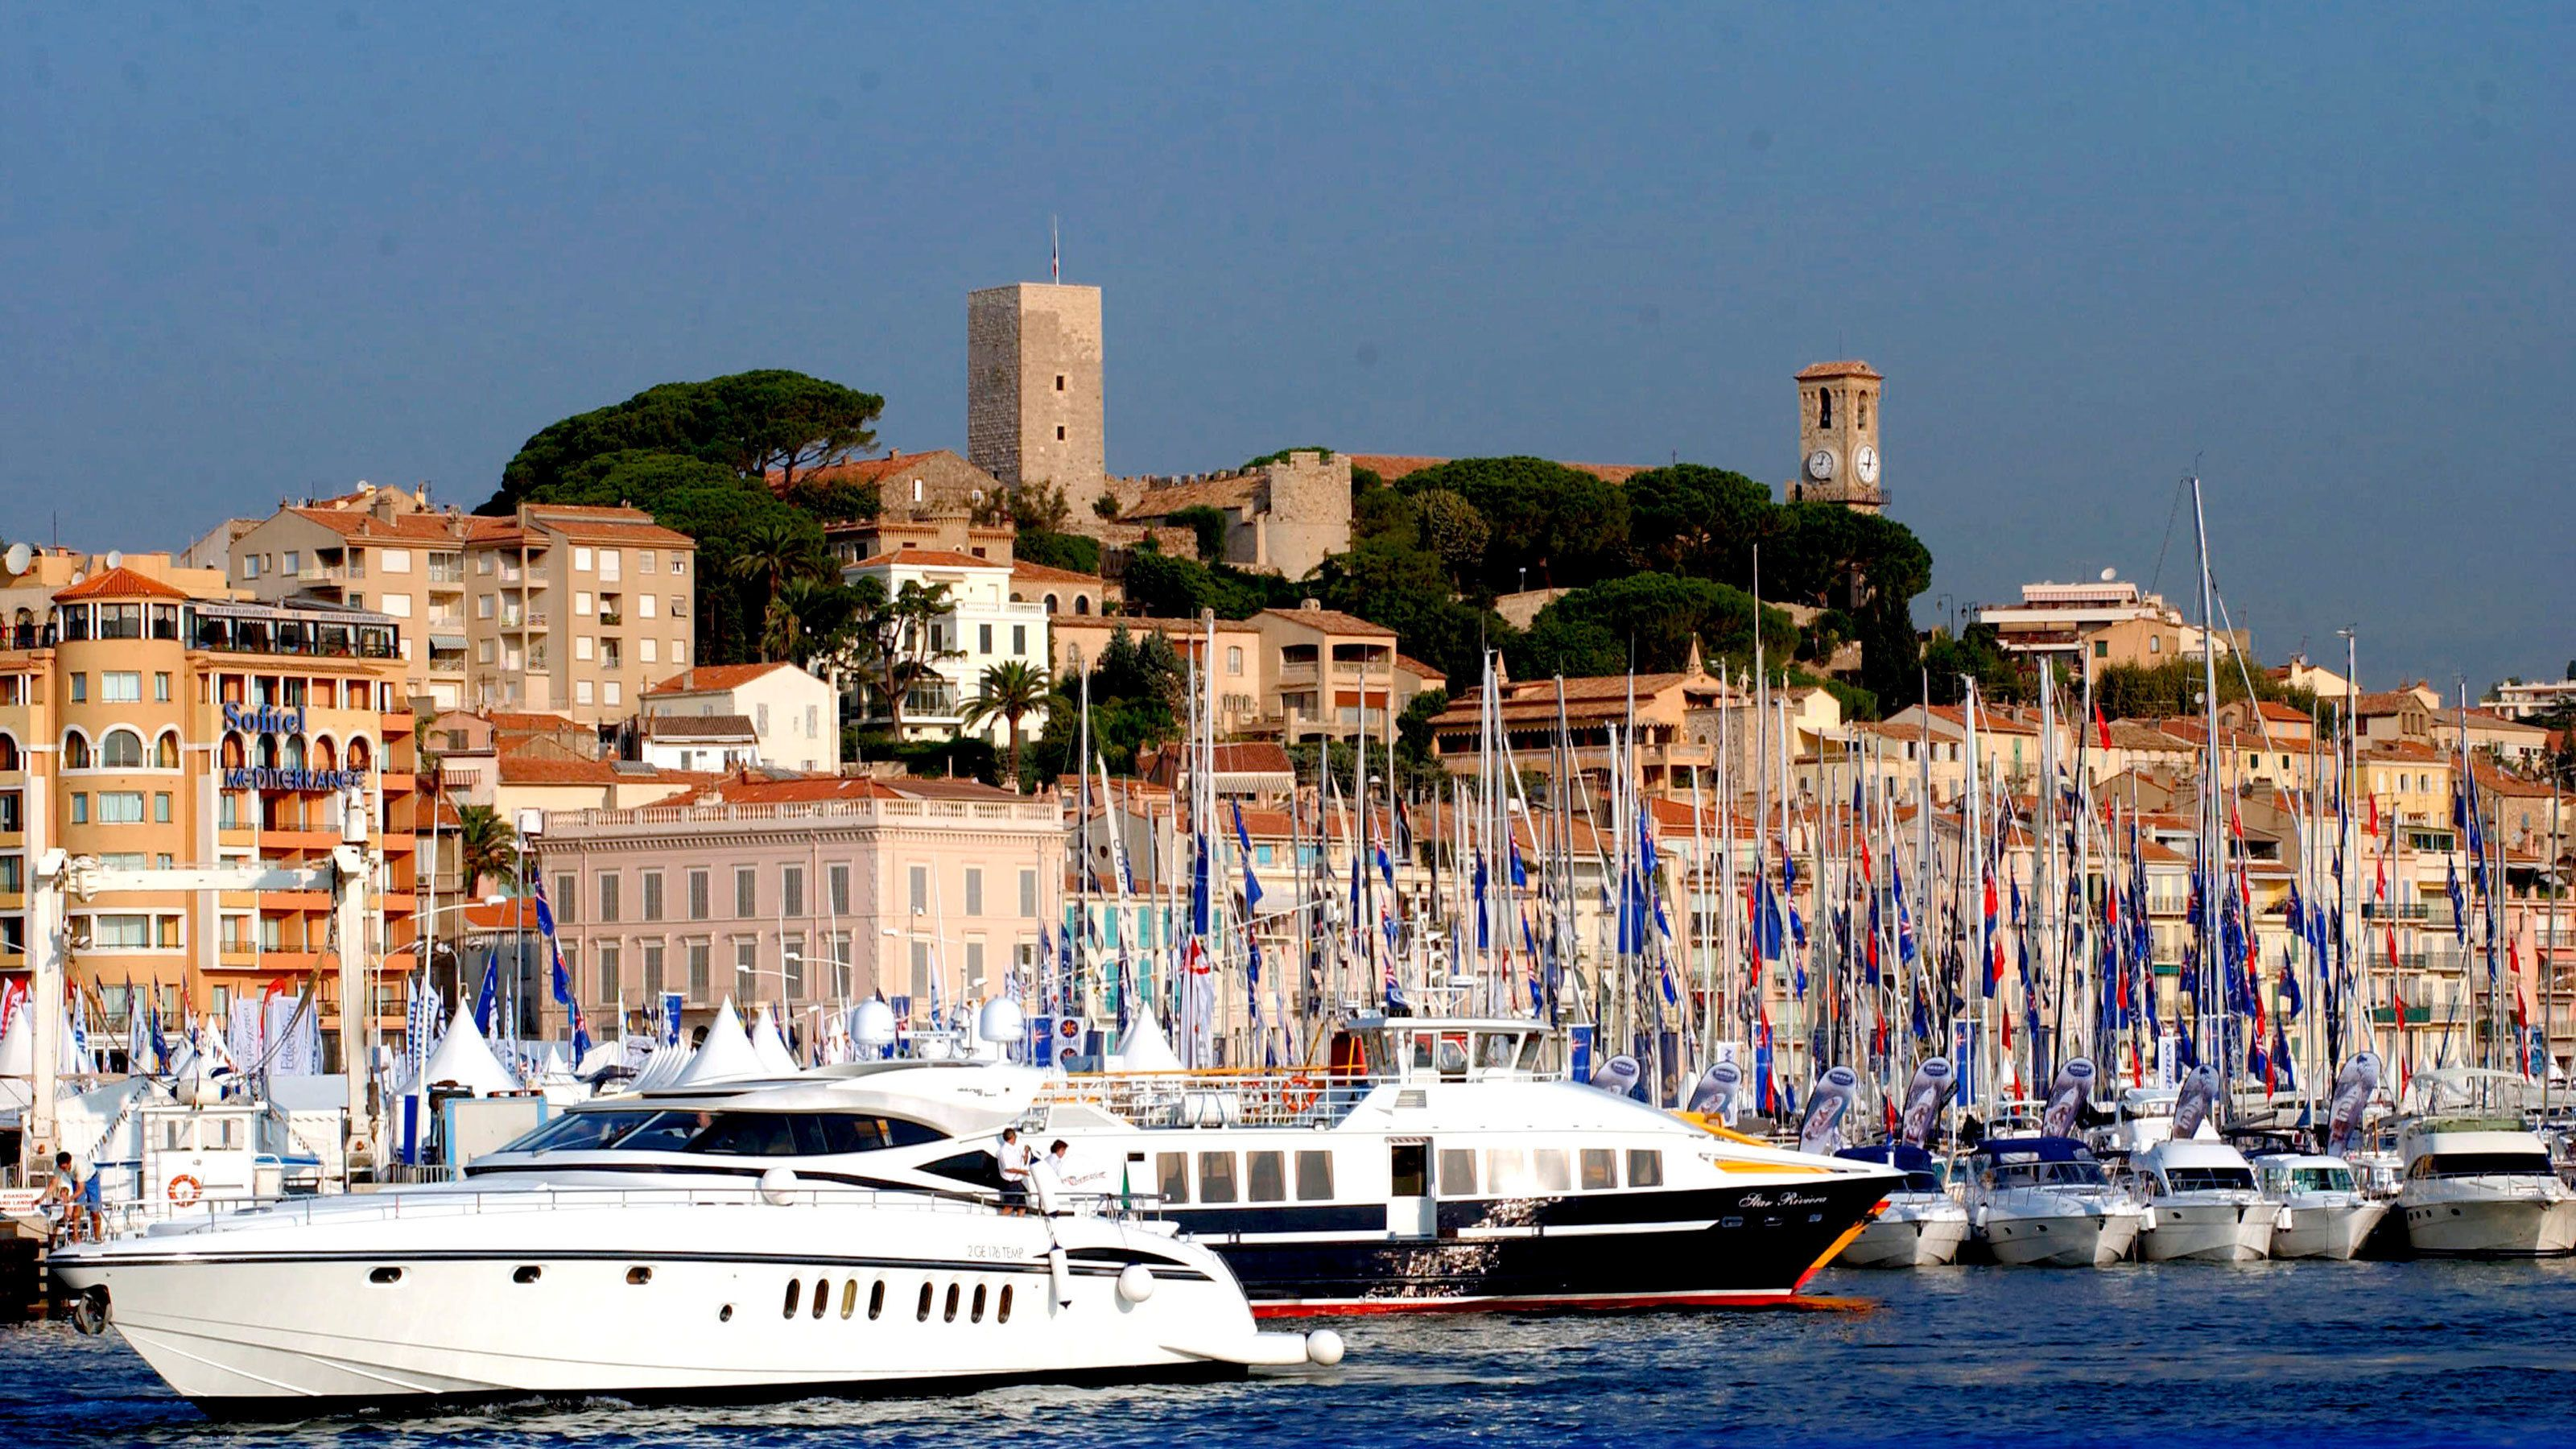 Sailboats in Cannes